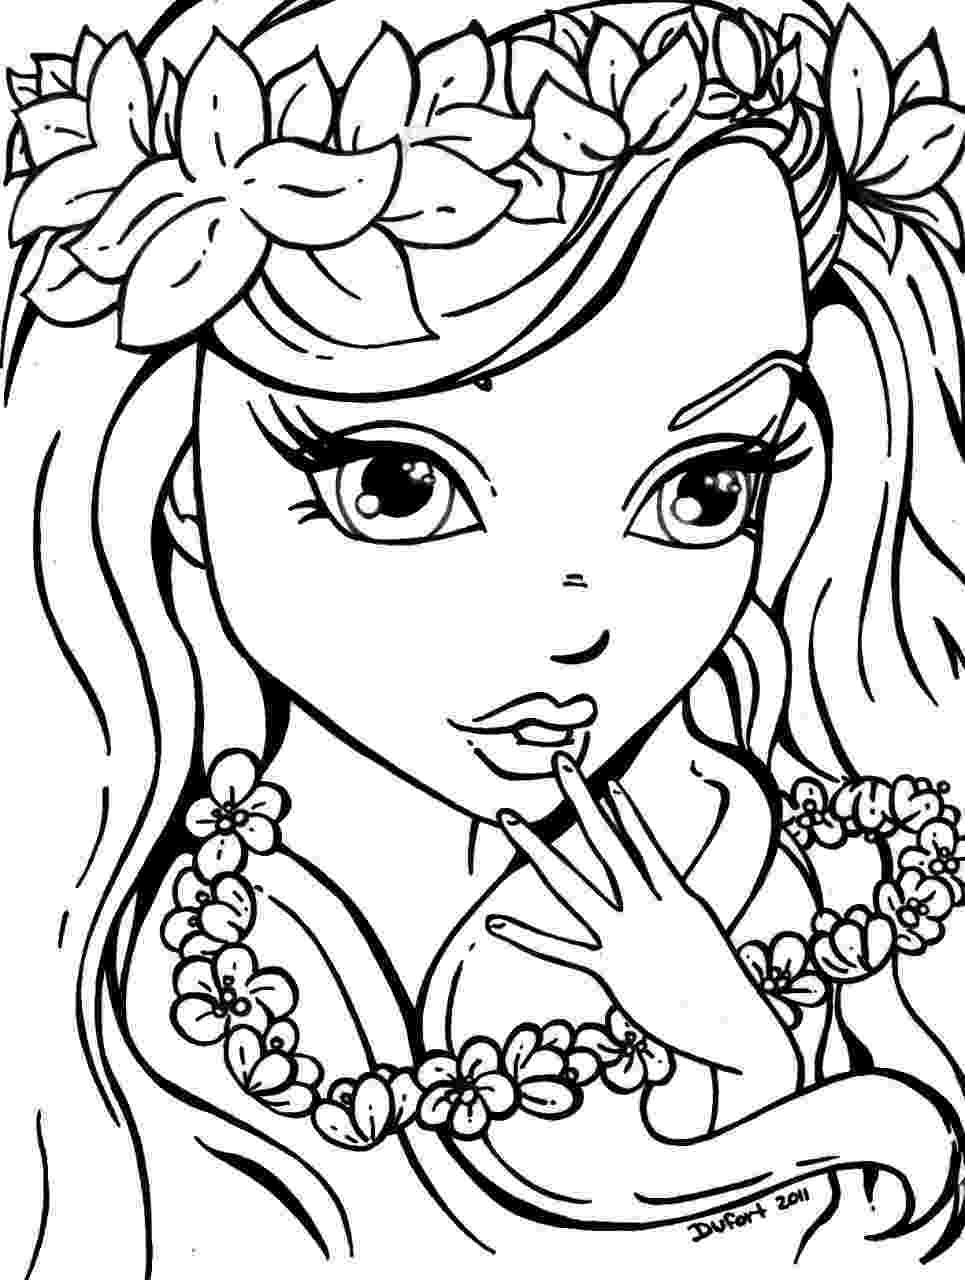 girls coloring pictures coloring pages for girls best coloring pages for kids pictures girls coloring 1 1